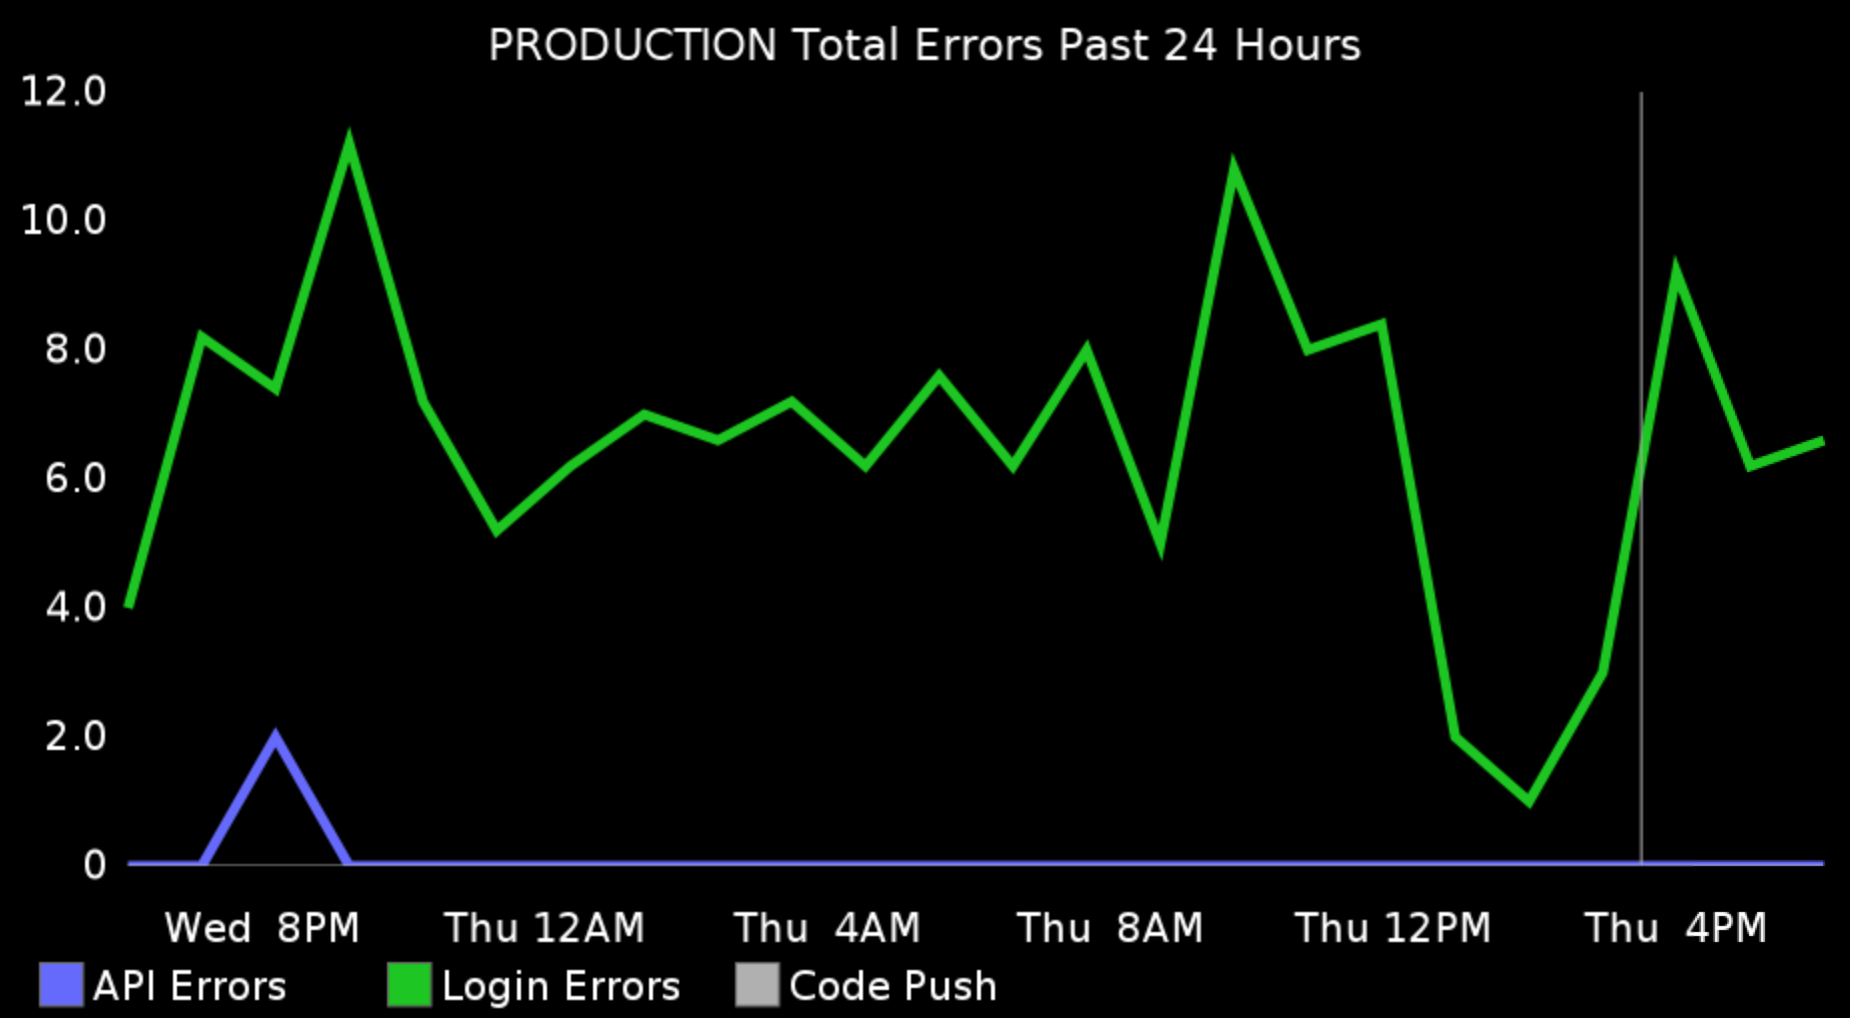 The rate of errors for the last 24 hours